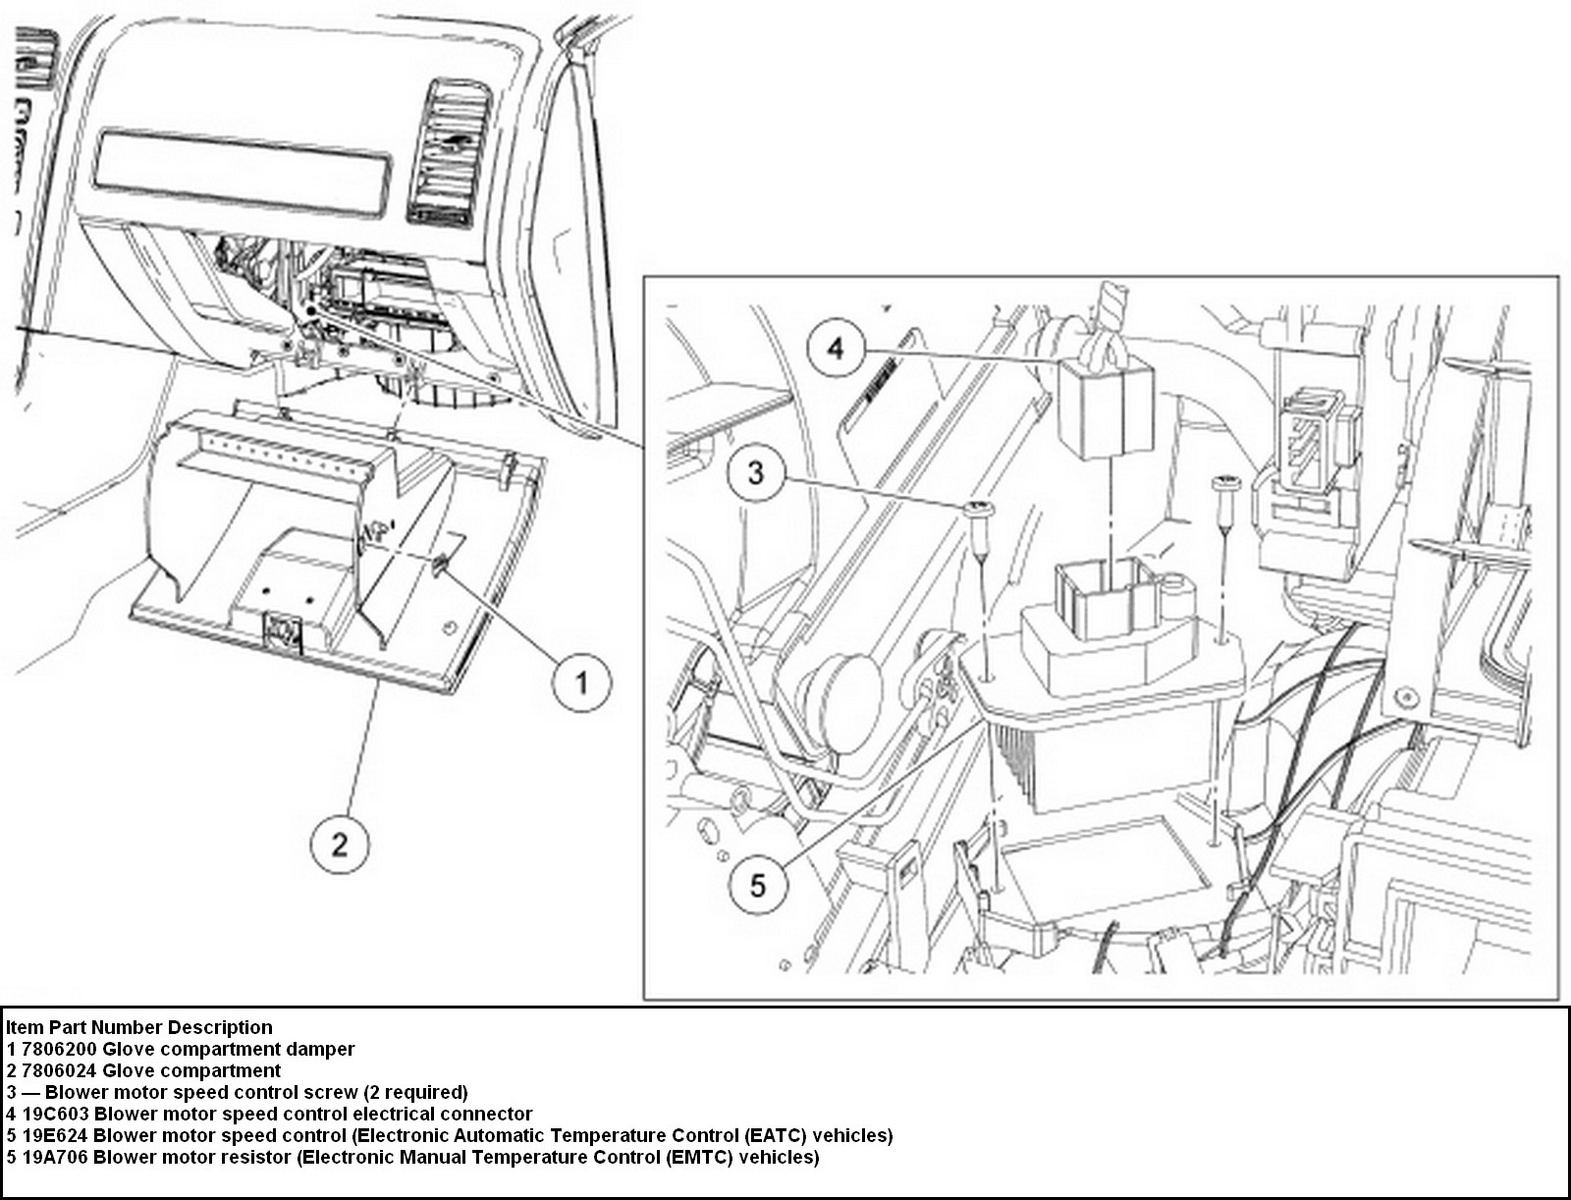 2006 rav4 engine compartment diagram ford edge questions how do you remove and replace karmann ghia engine compartment diagram